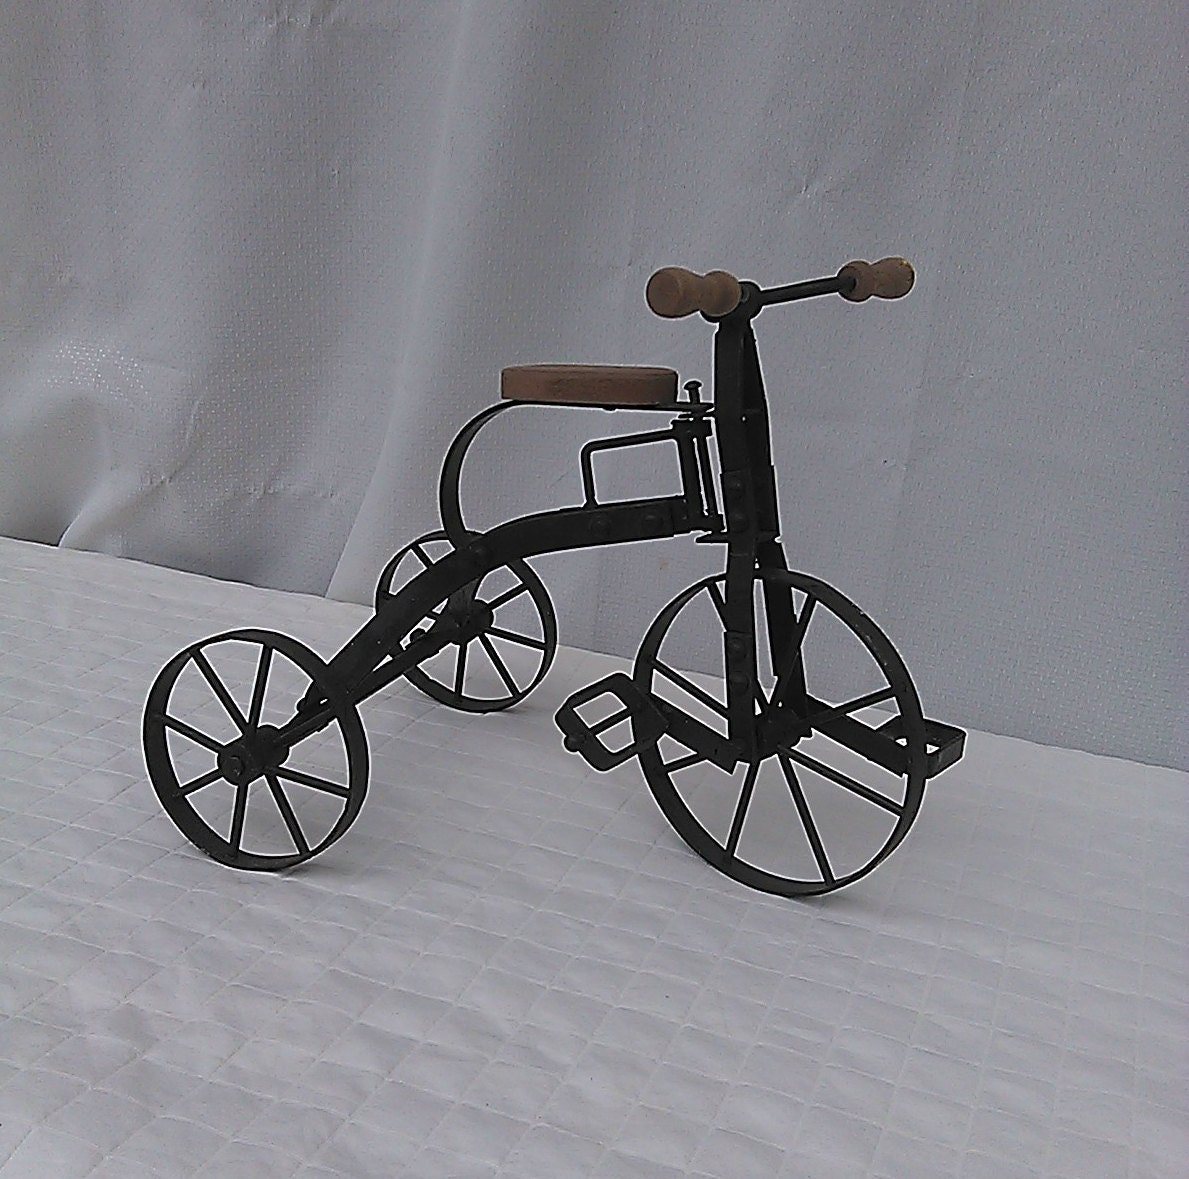 Makers Of Antique Tricycles : Vintage antique tricycle toy art model sculpture by